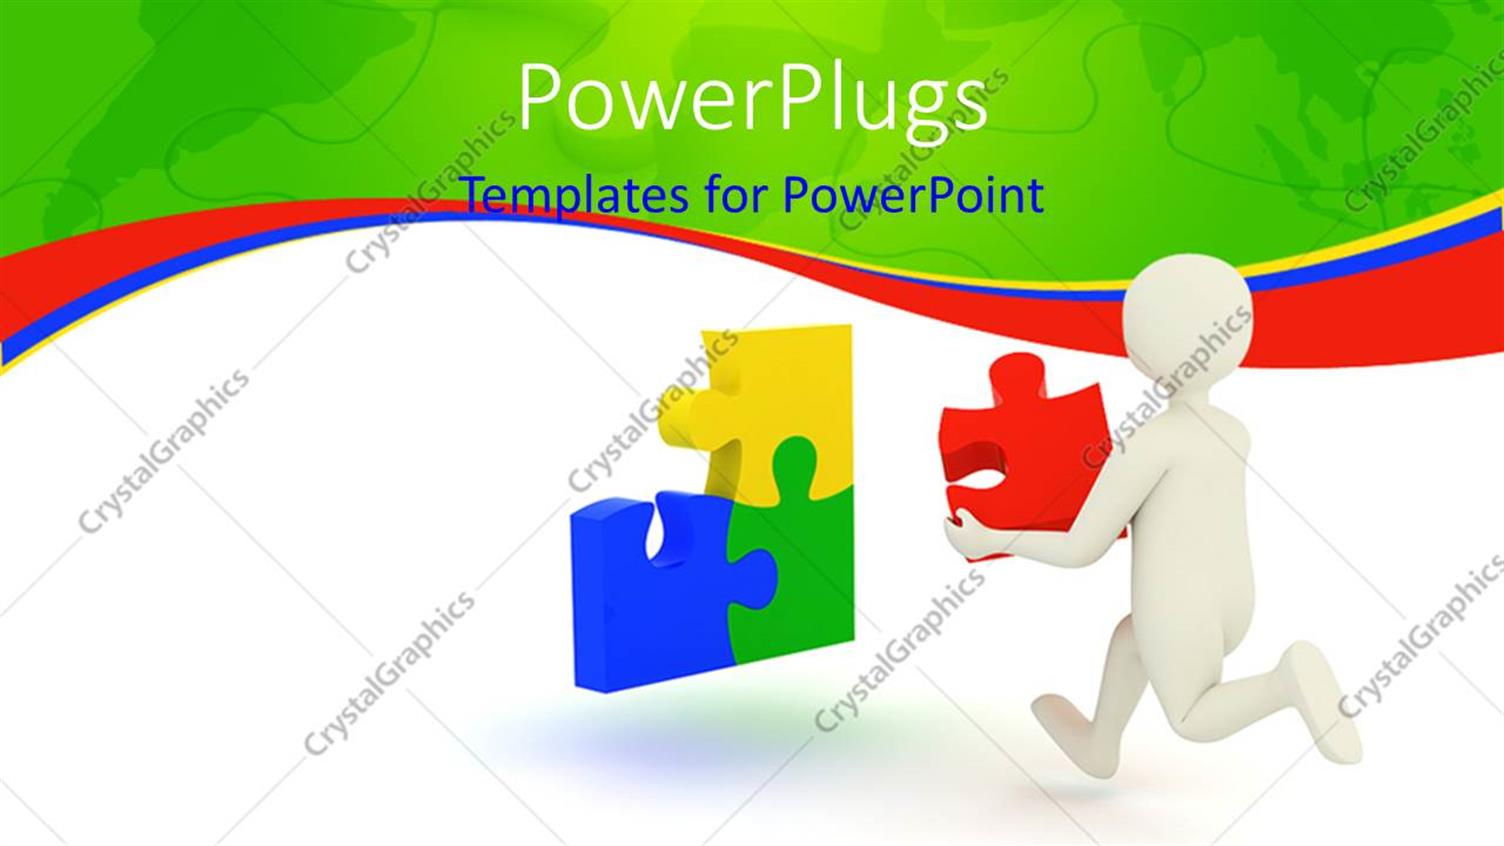 PowerPoint Template Displaying a White Colored Character Running with a Puzzle Piece in his Hand